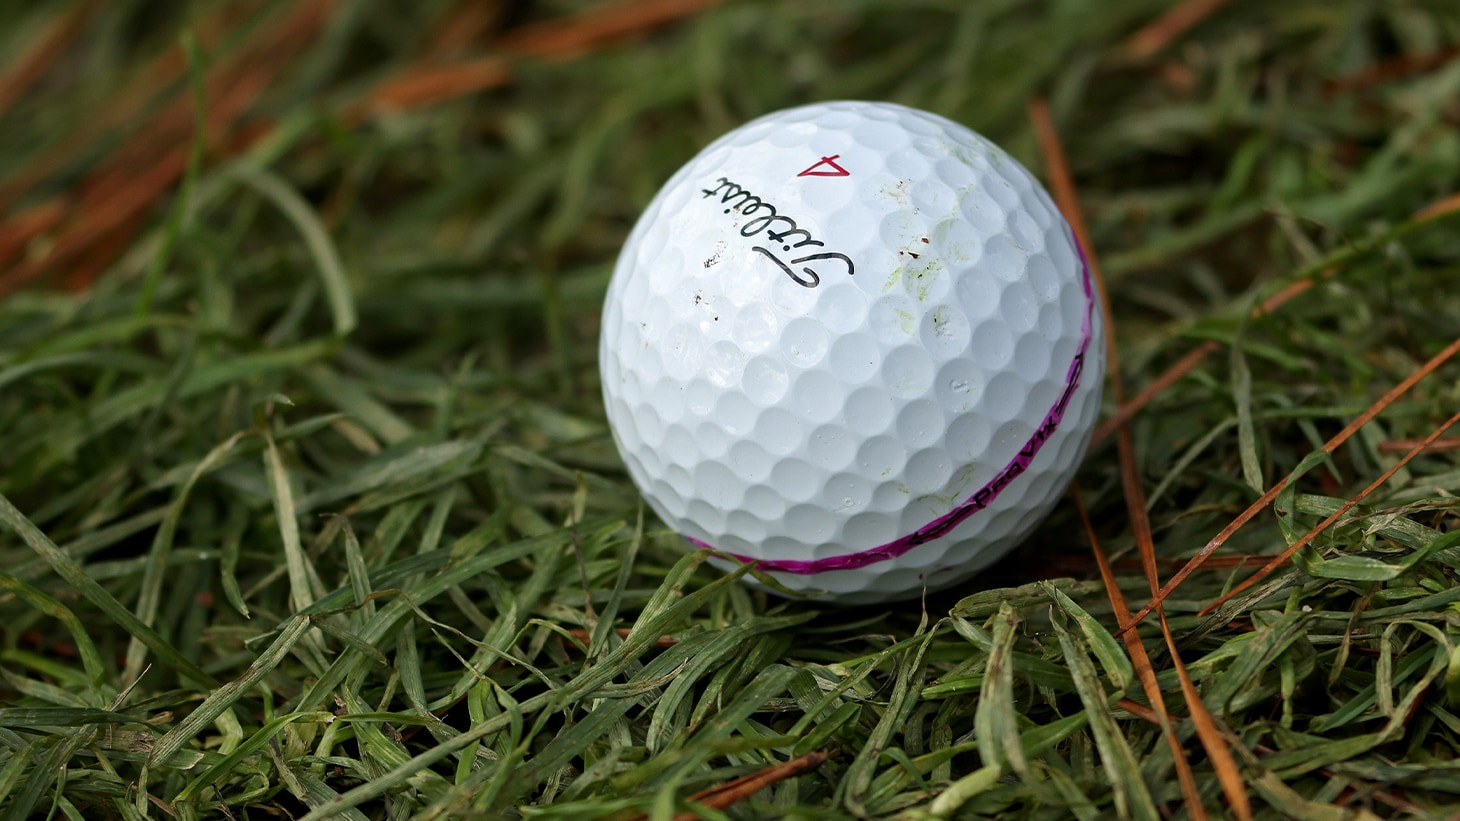 Cam Smith | NEW Pro V1x golf ball